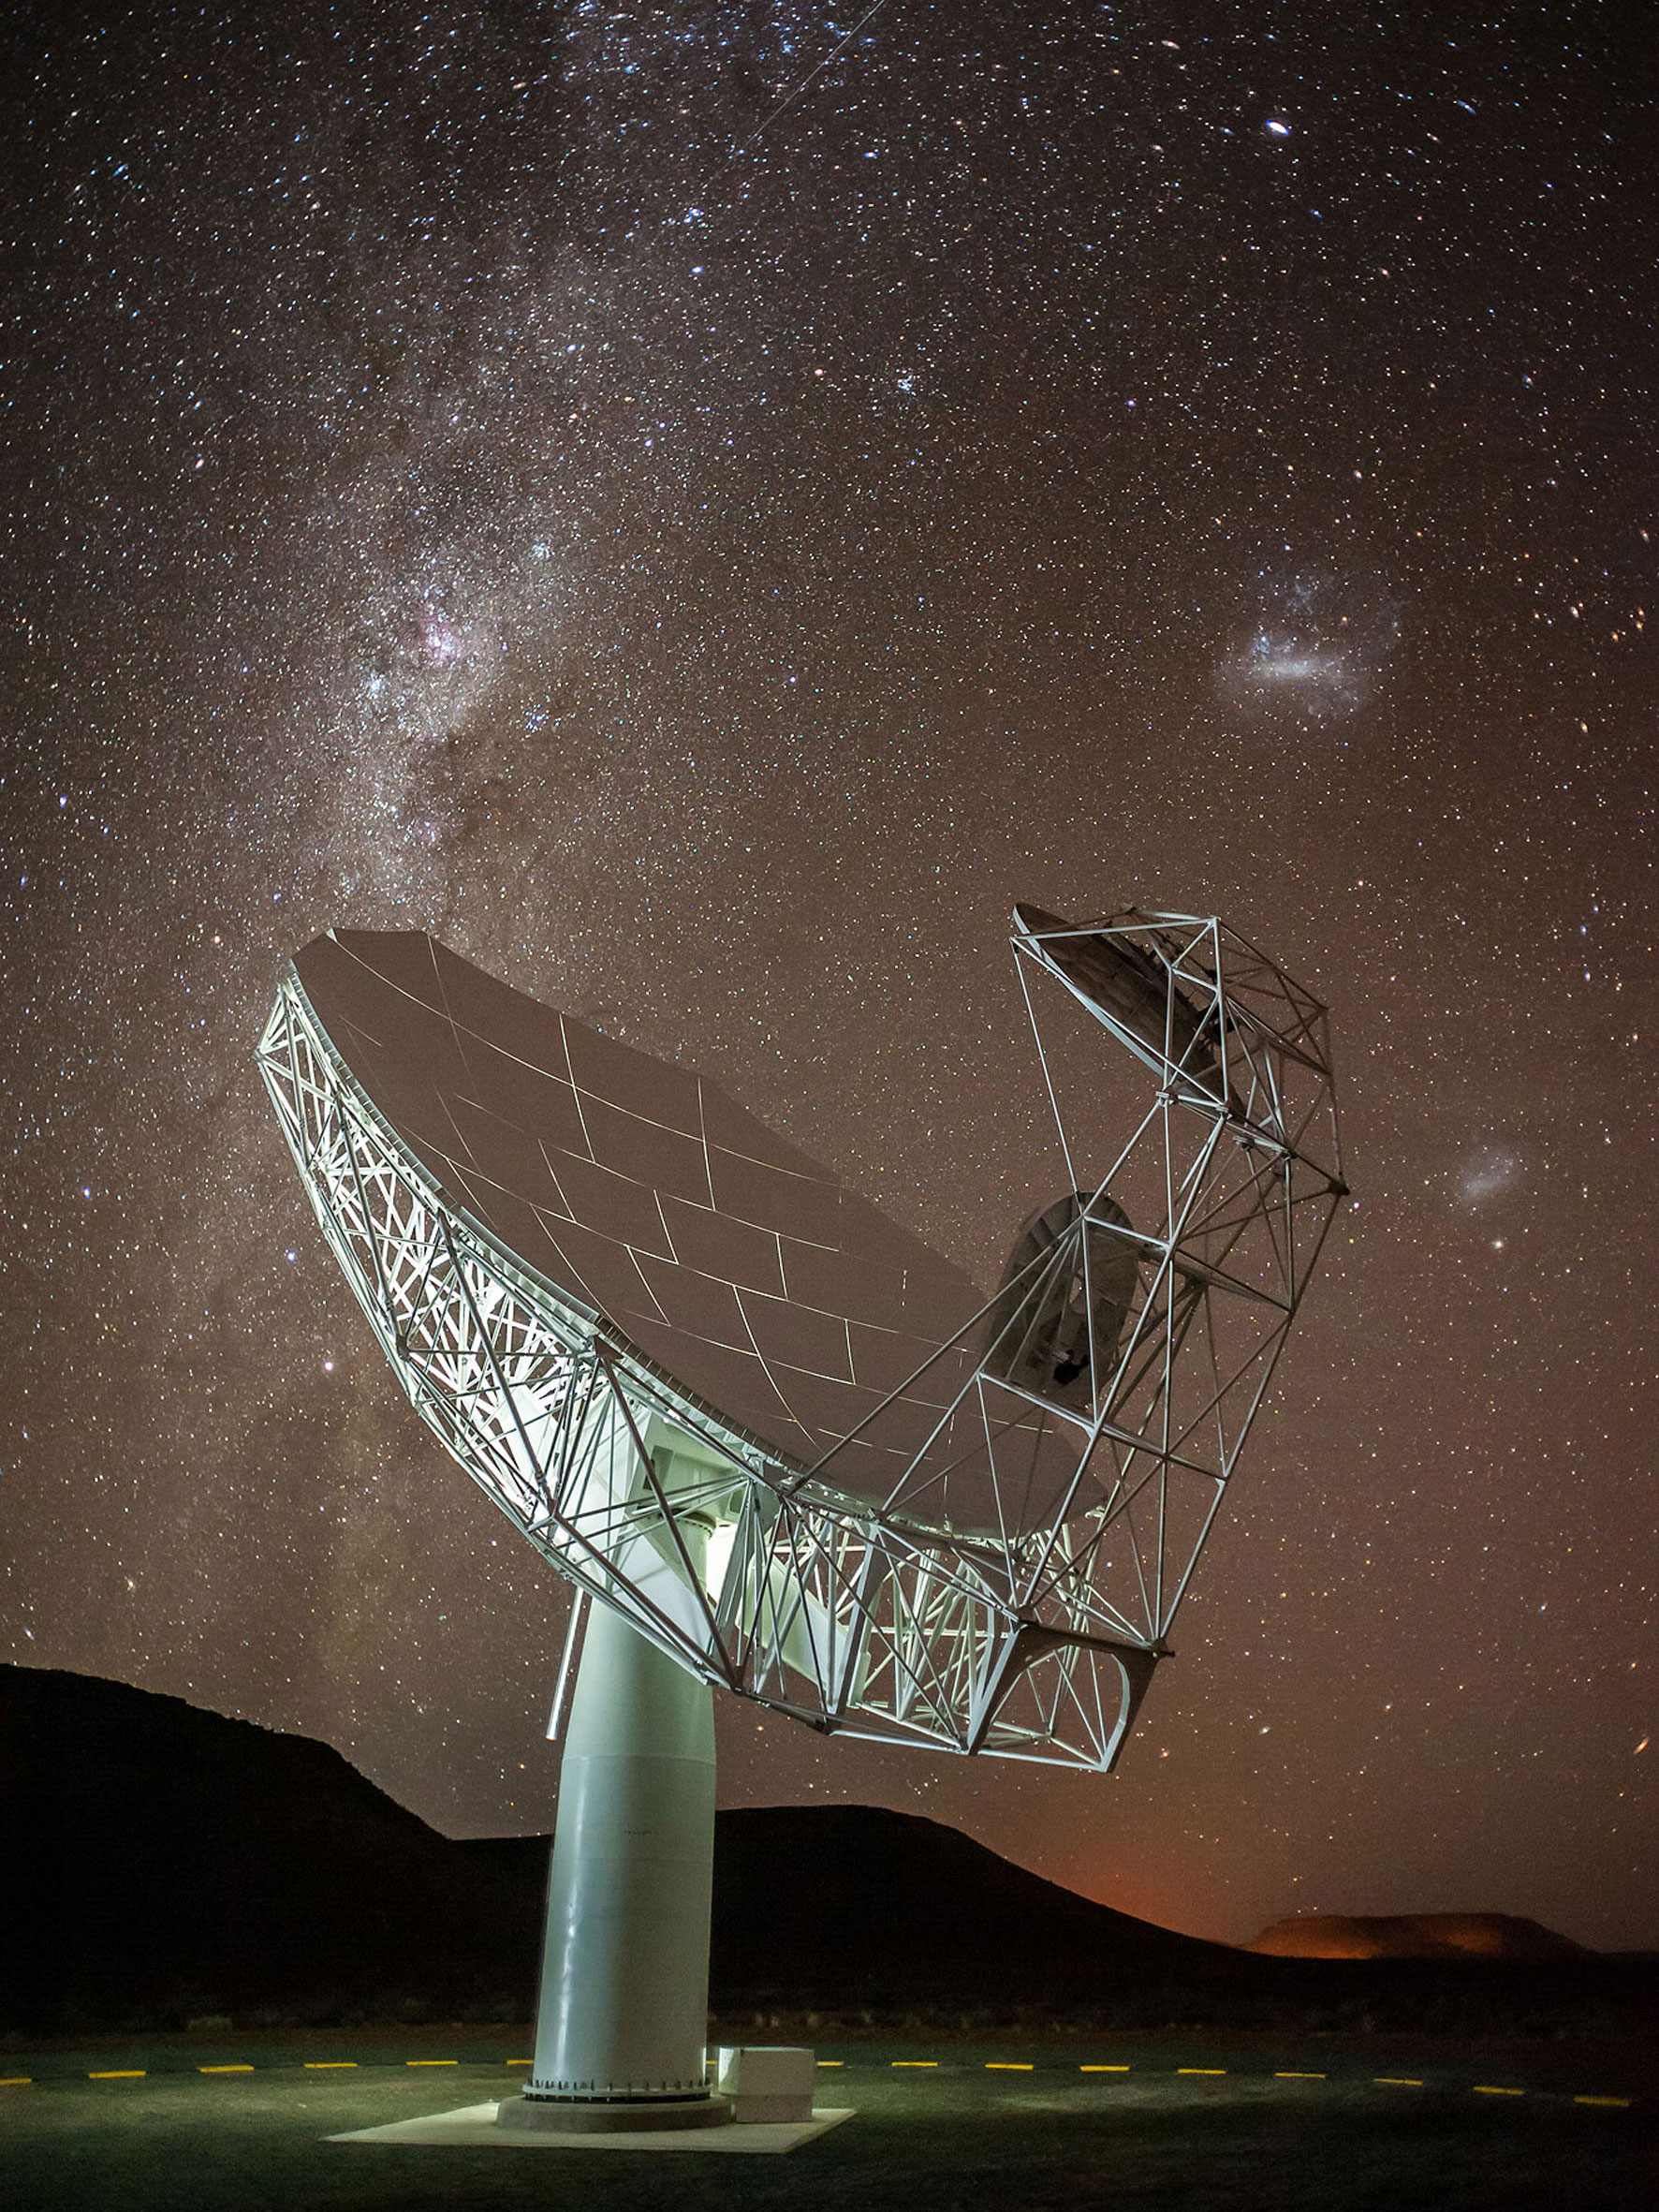 05 First of the MeerKAT Precursor Telescope Dishes